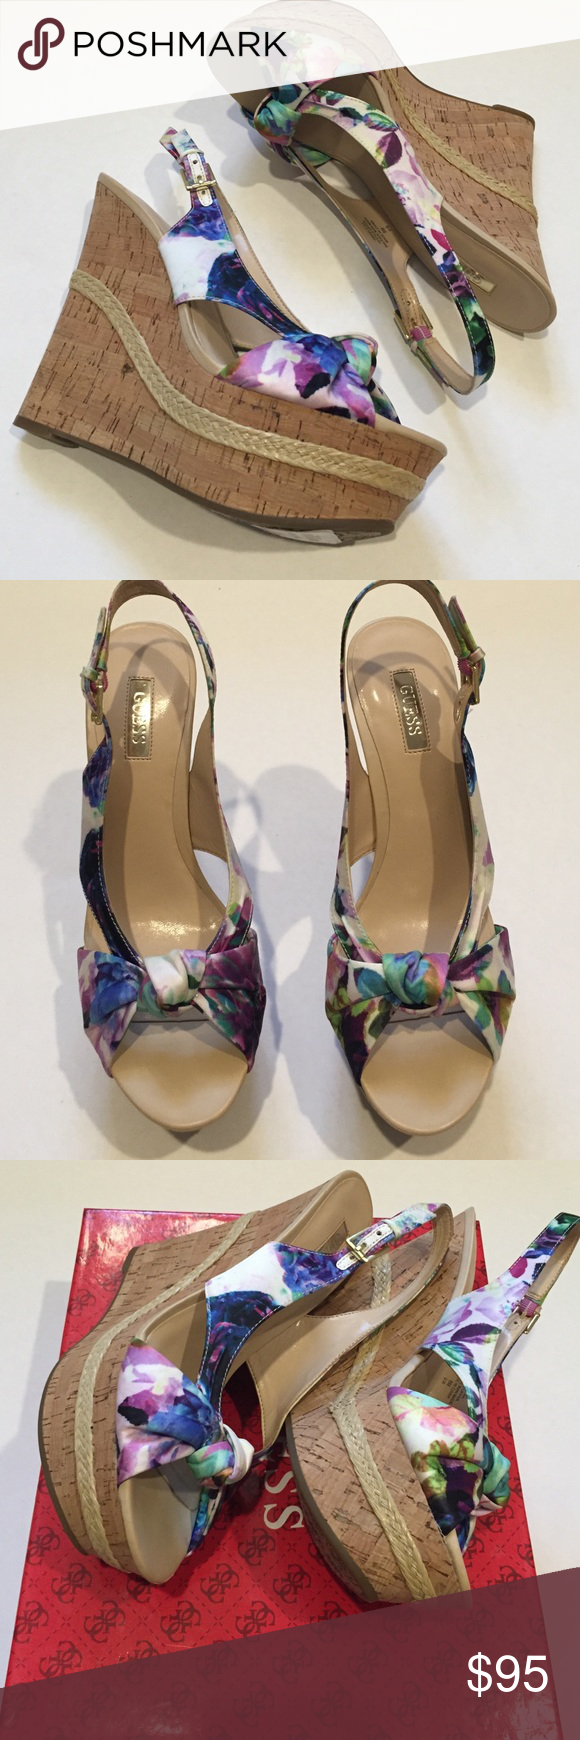 Guess Multi-Colored Floral wedge 8 NWT and box in excellent condition. Be the style of summer with these multi-colored floral wedge sling-backs! Adjustable ankle strap and cute twist detail on peep-toe. 2 inch platform and 5.5 inch heel. GUESS Shoes Wedges